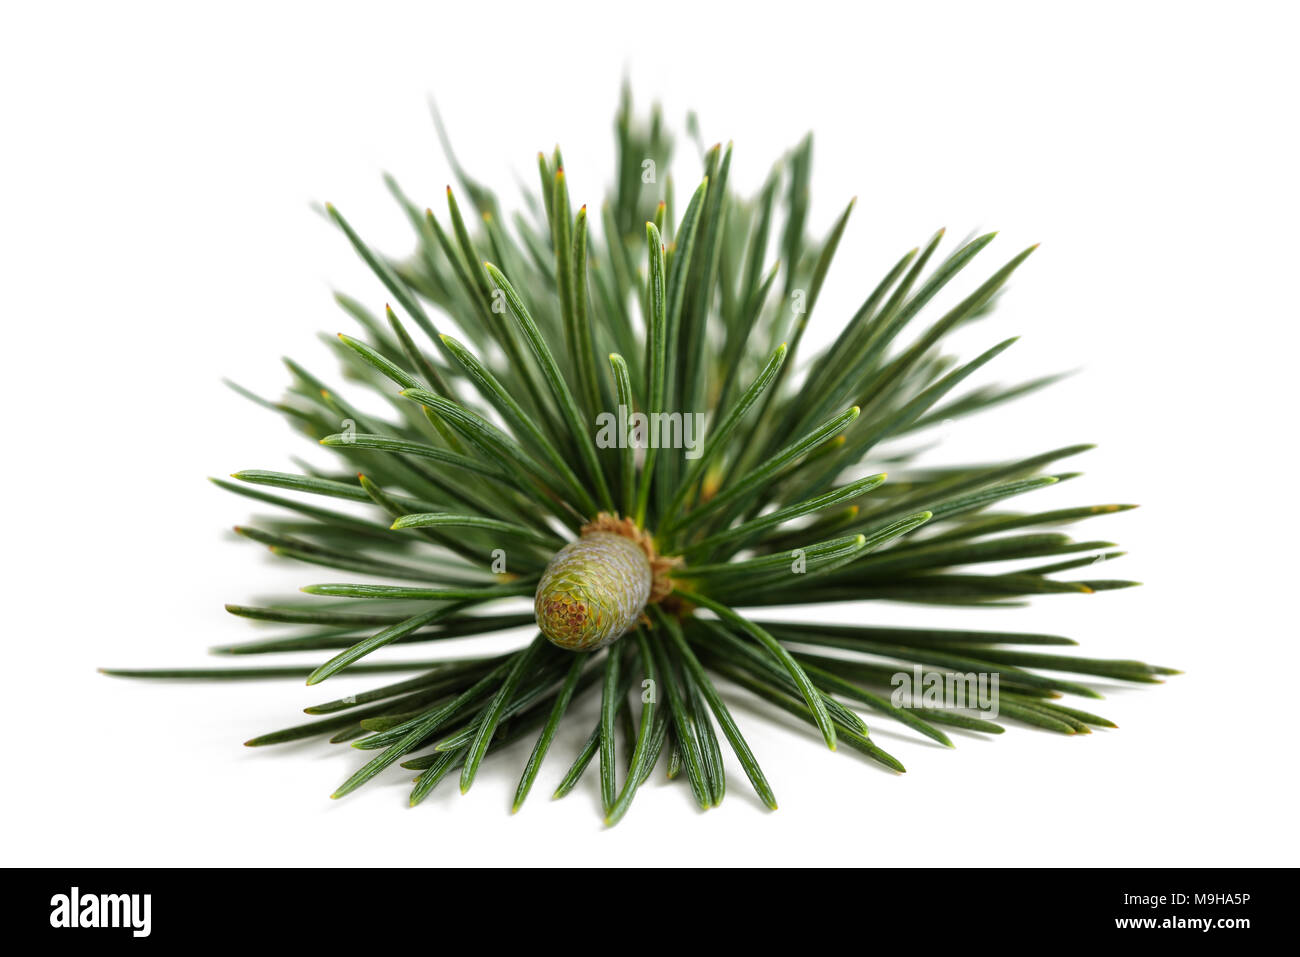 Pine branch with bud isolated on white - Stock Image